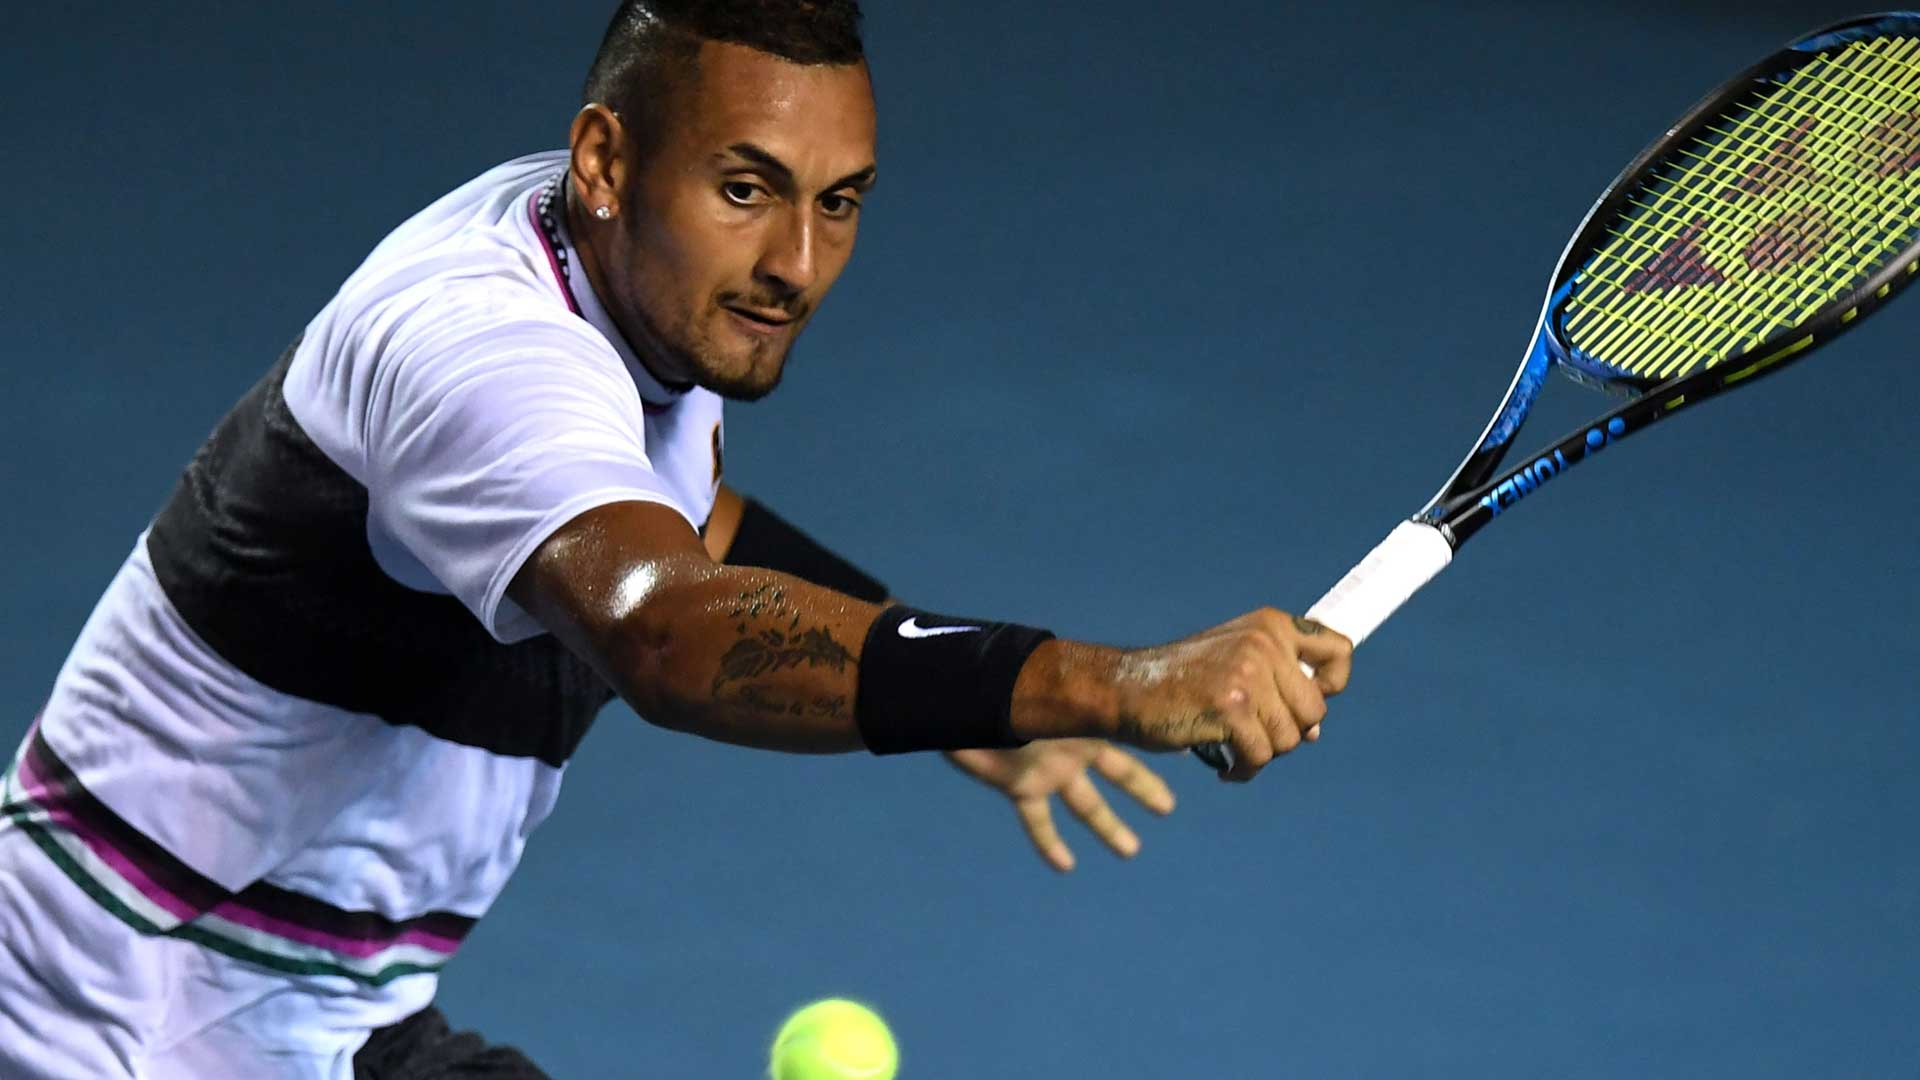 Nick Kyrgios hits a backhand in Acapulco.